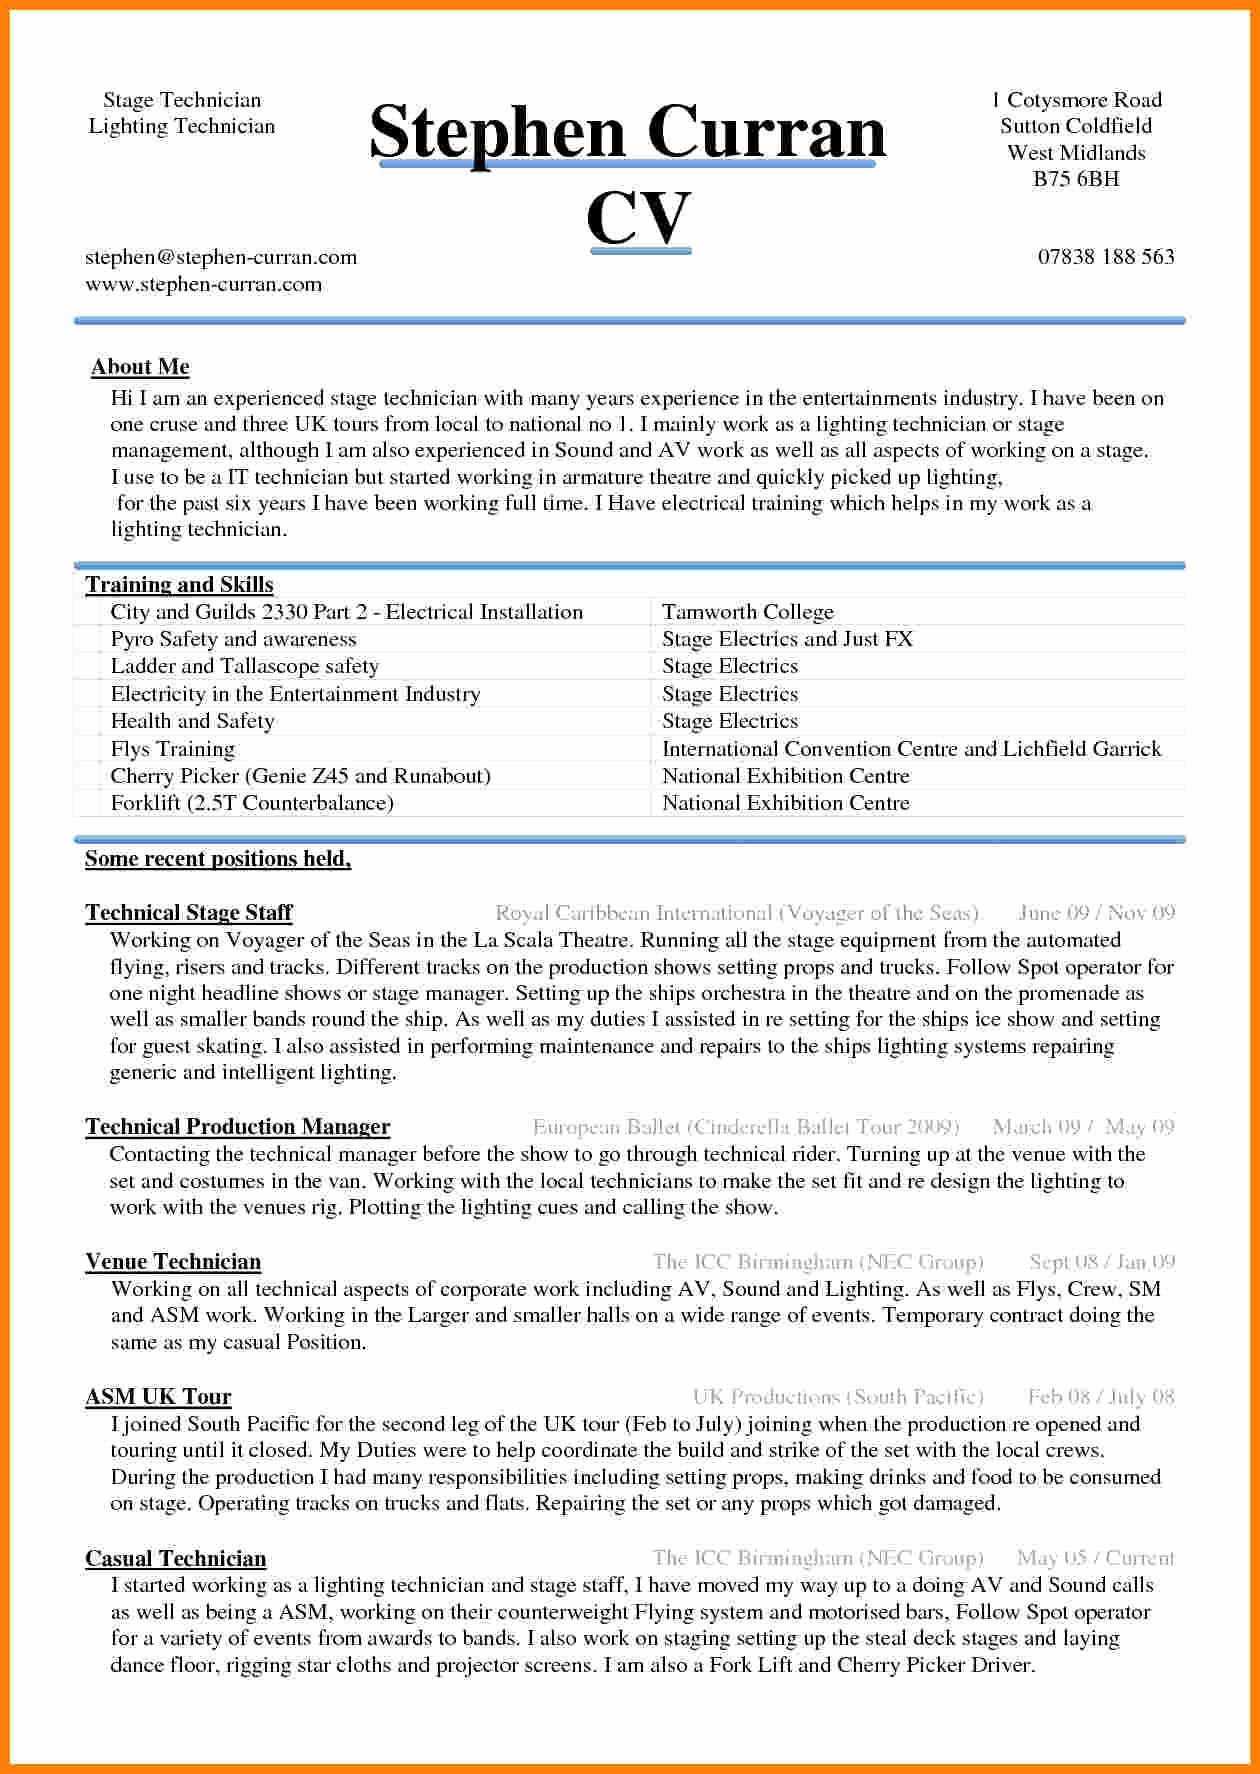 Cv format Samples In Word New 5 Cv Sample Word Document